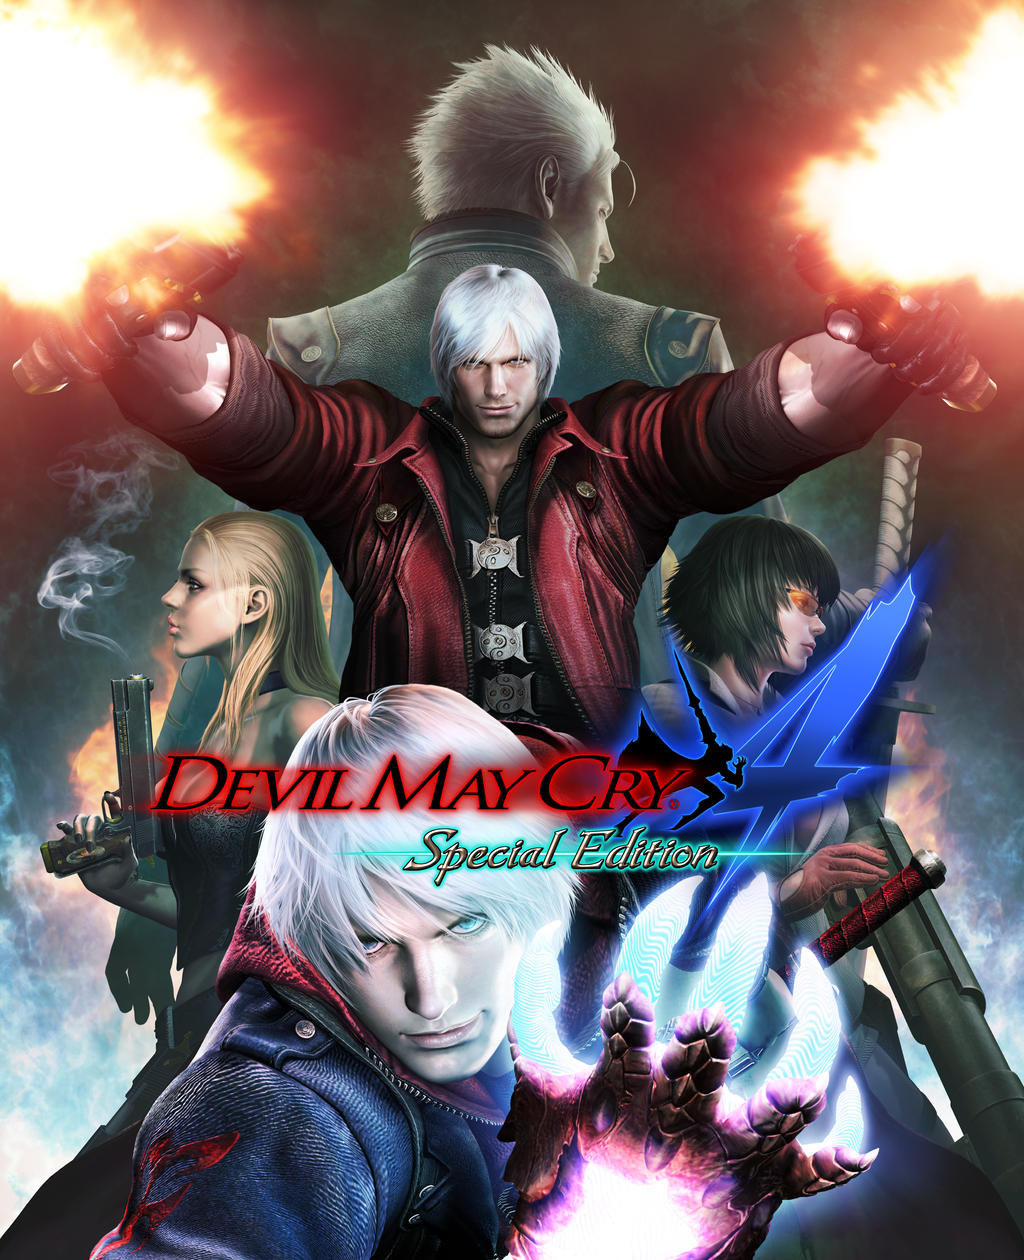 Devil May Cry Special Edition 4 By DanteDevilKnight On